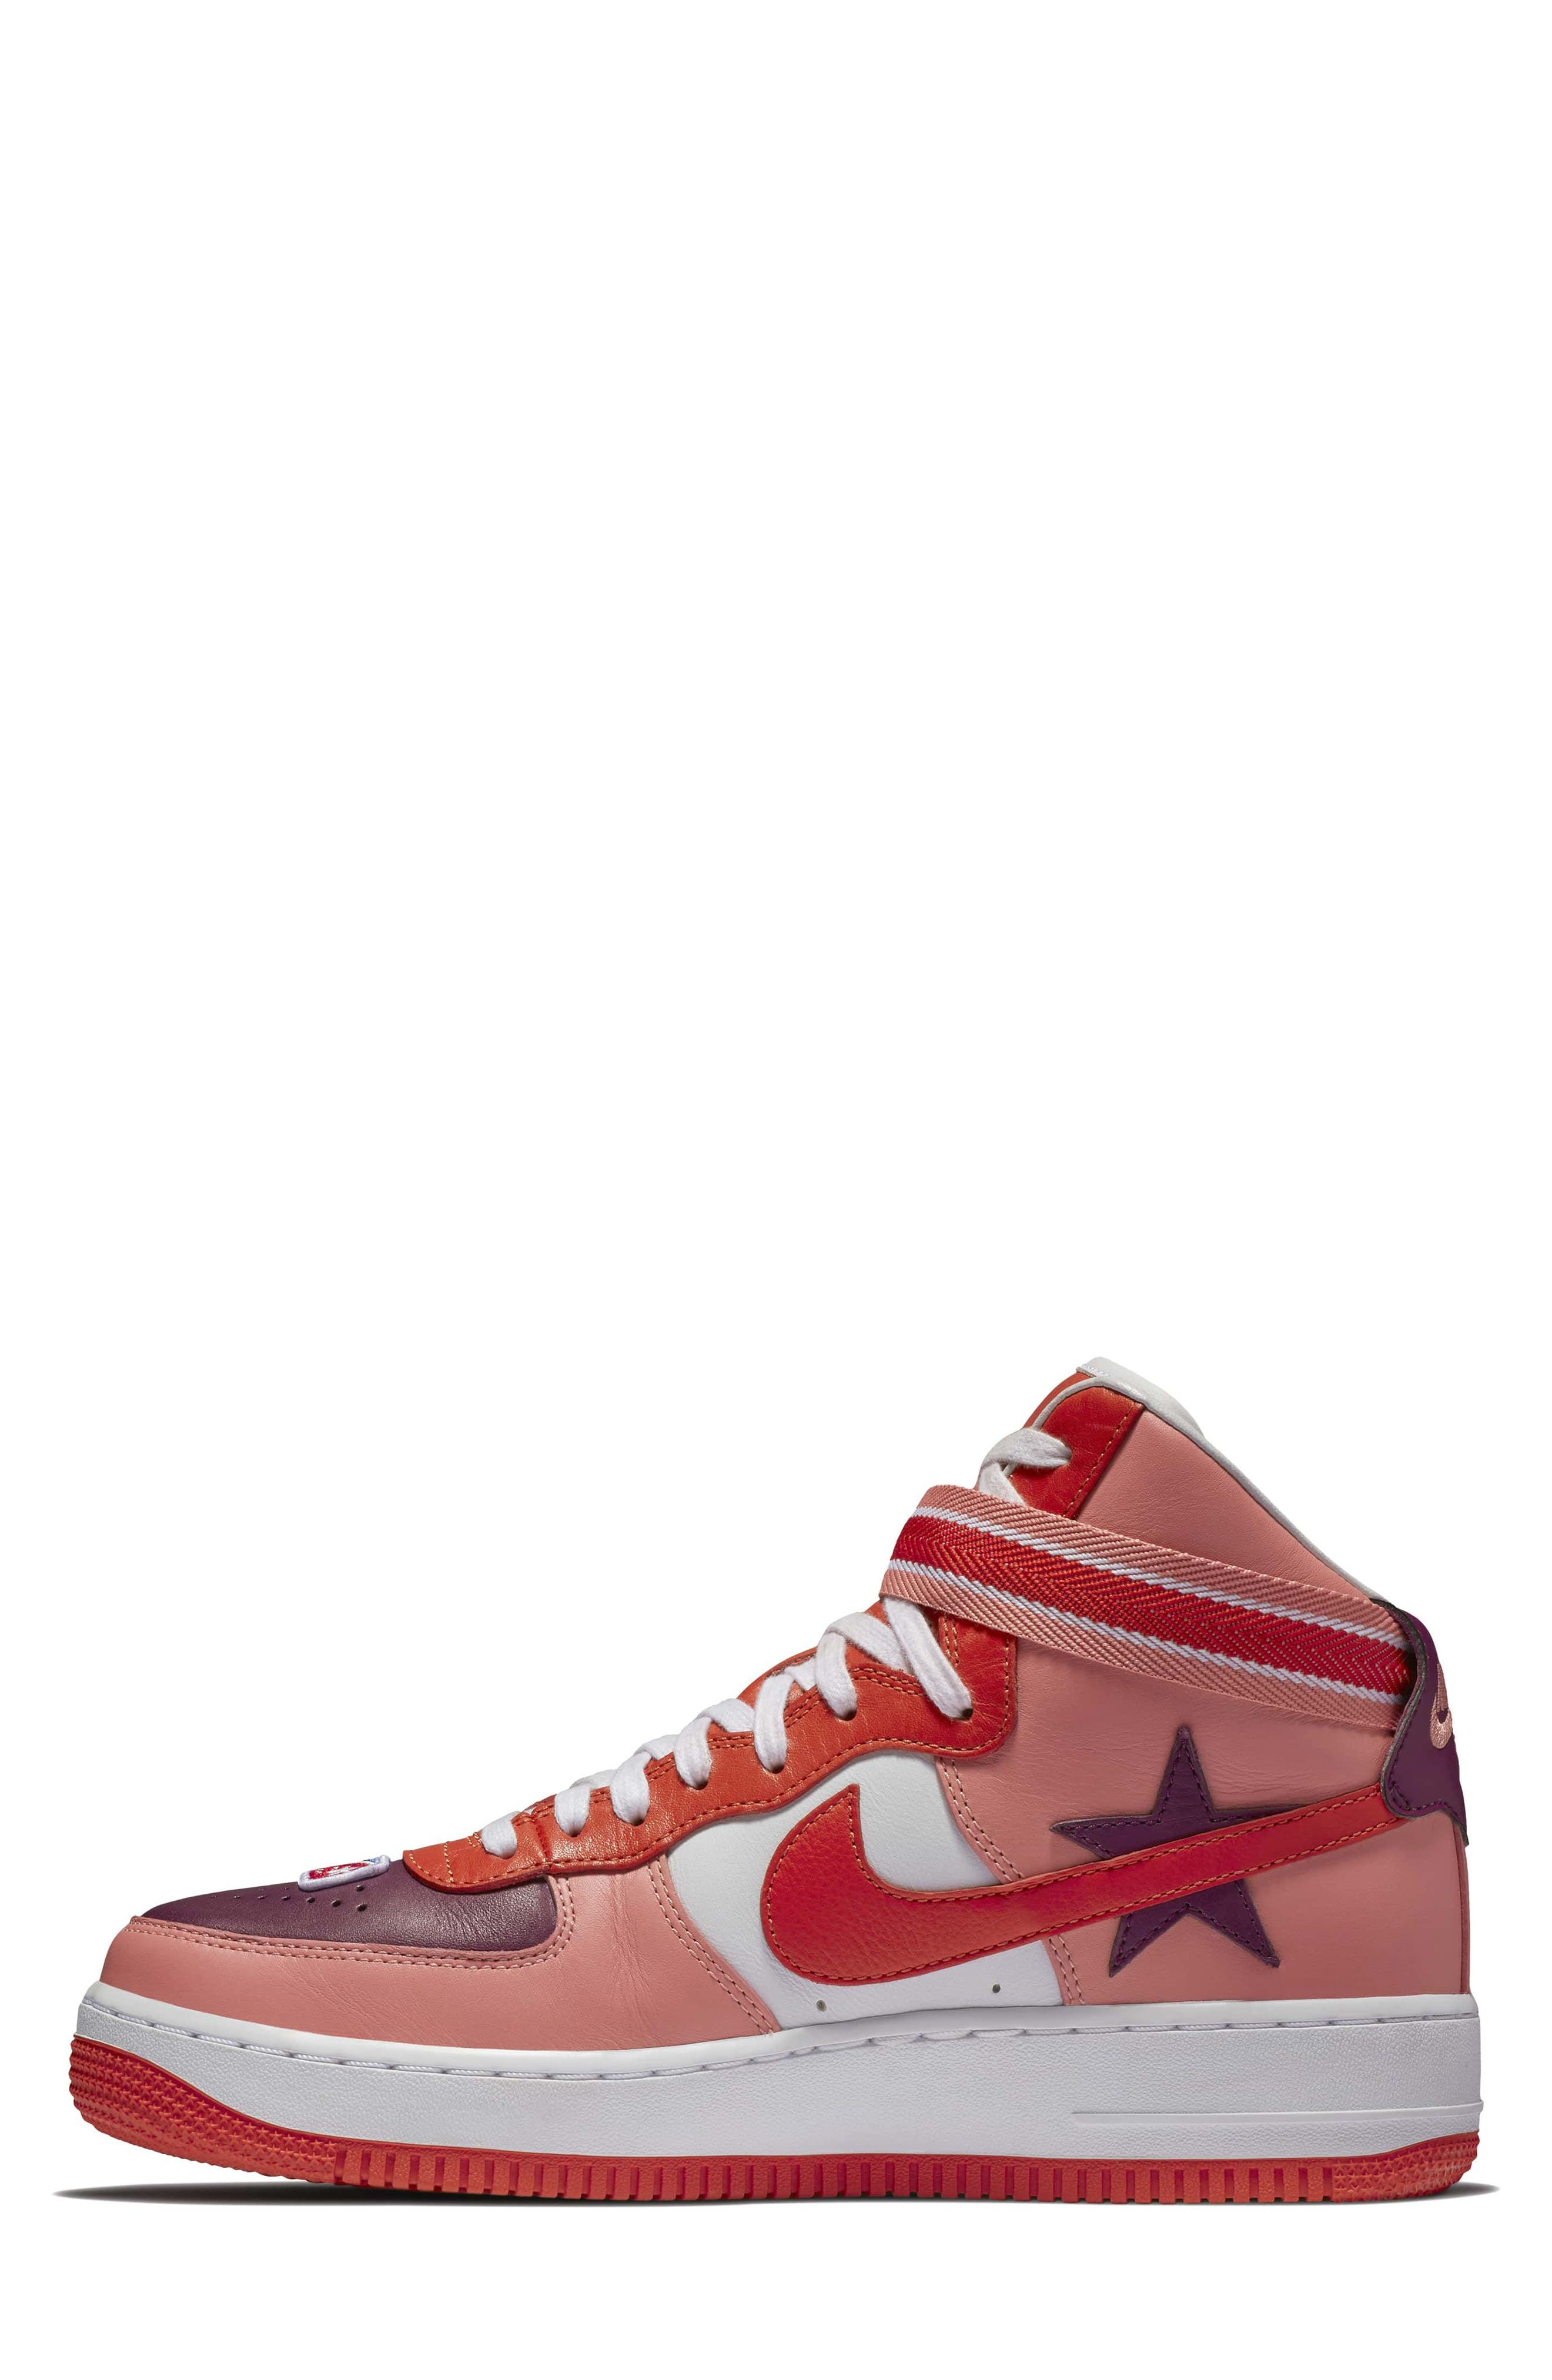 Air Force 1 High RT Sneaker,                             Alternate thumbnail 6, color,